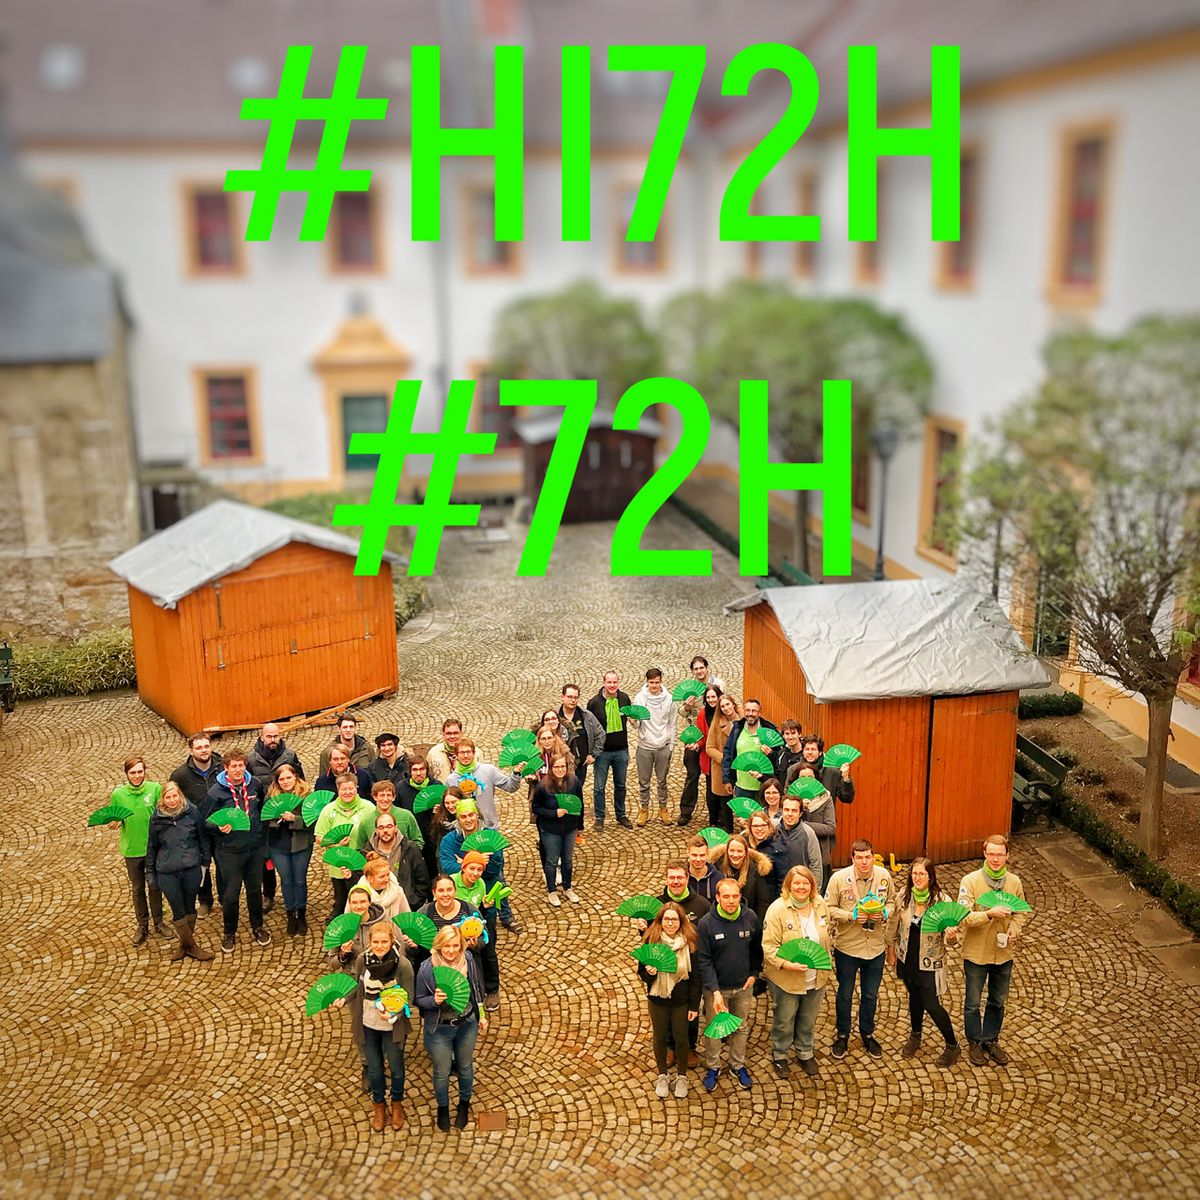 #HI72H #macheszudeineraktion #72H